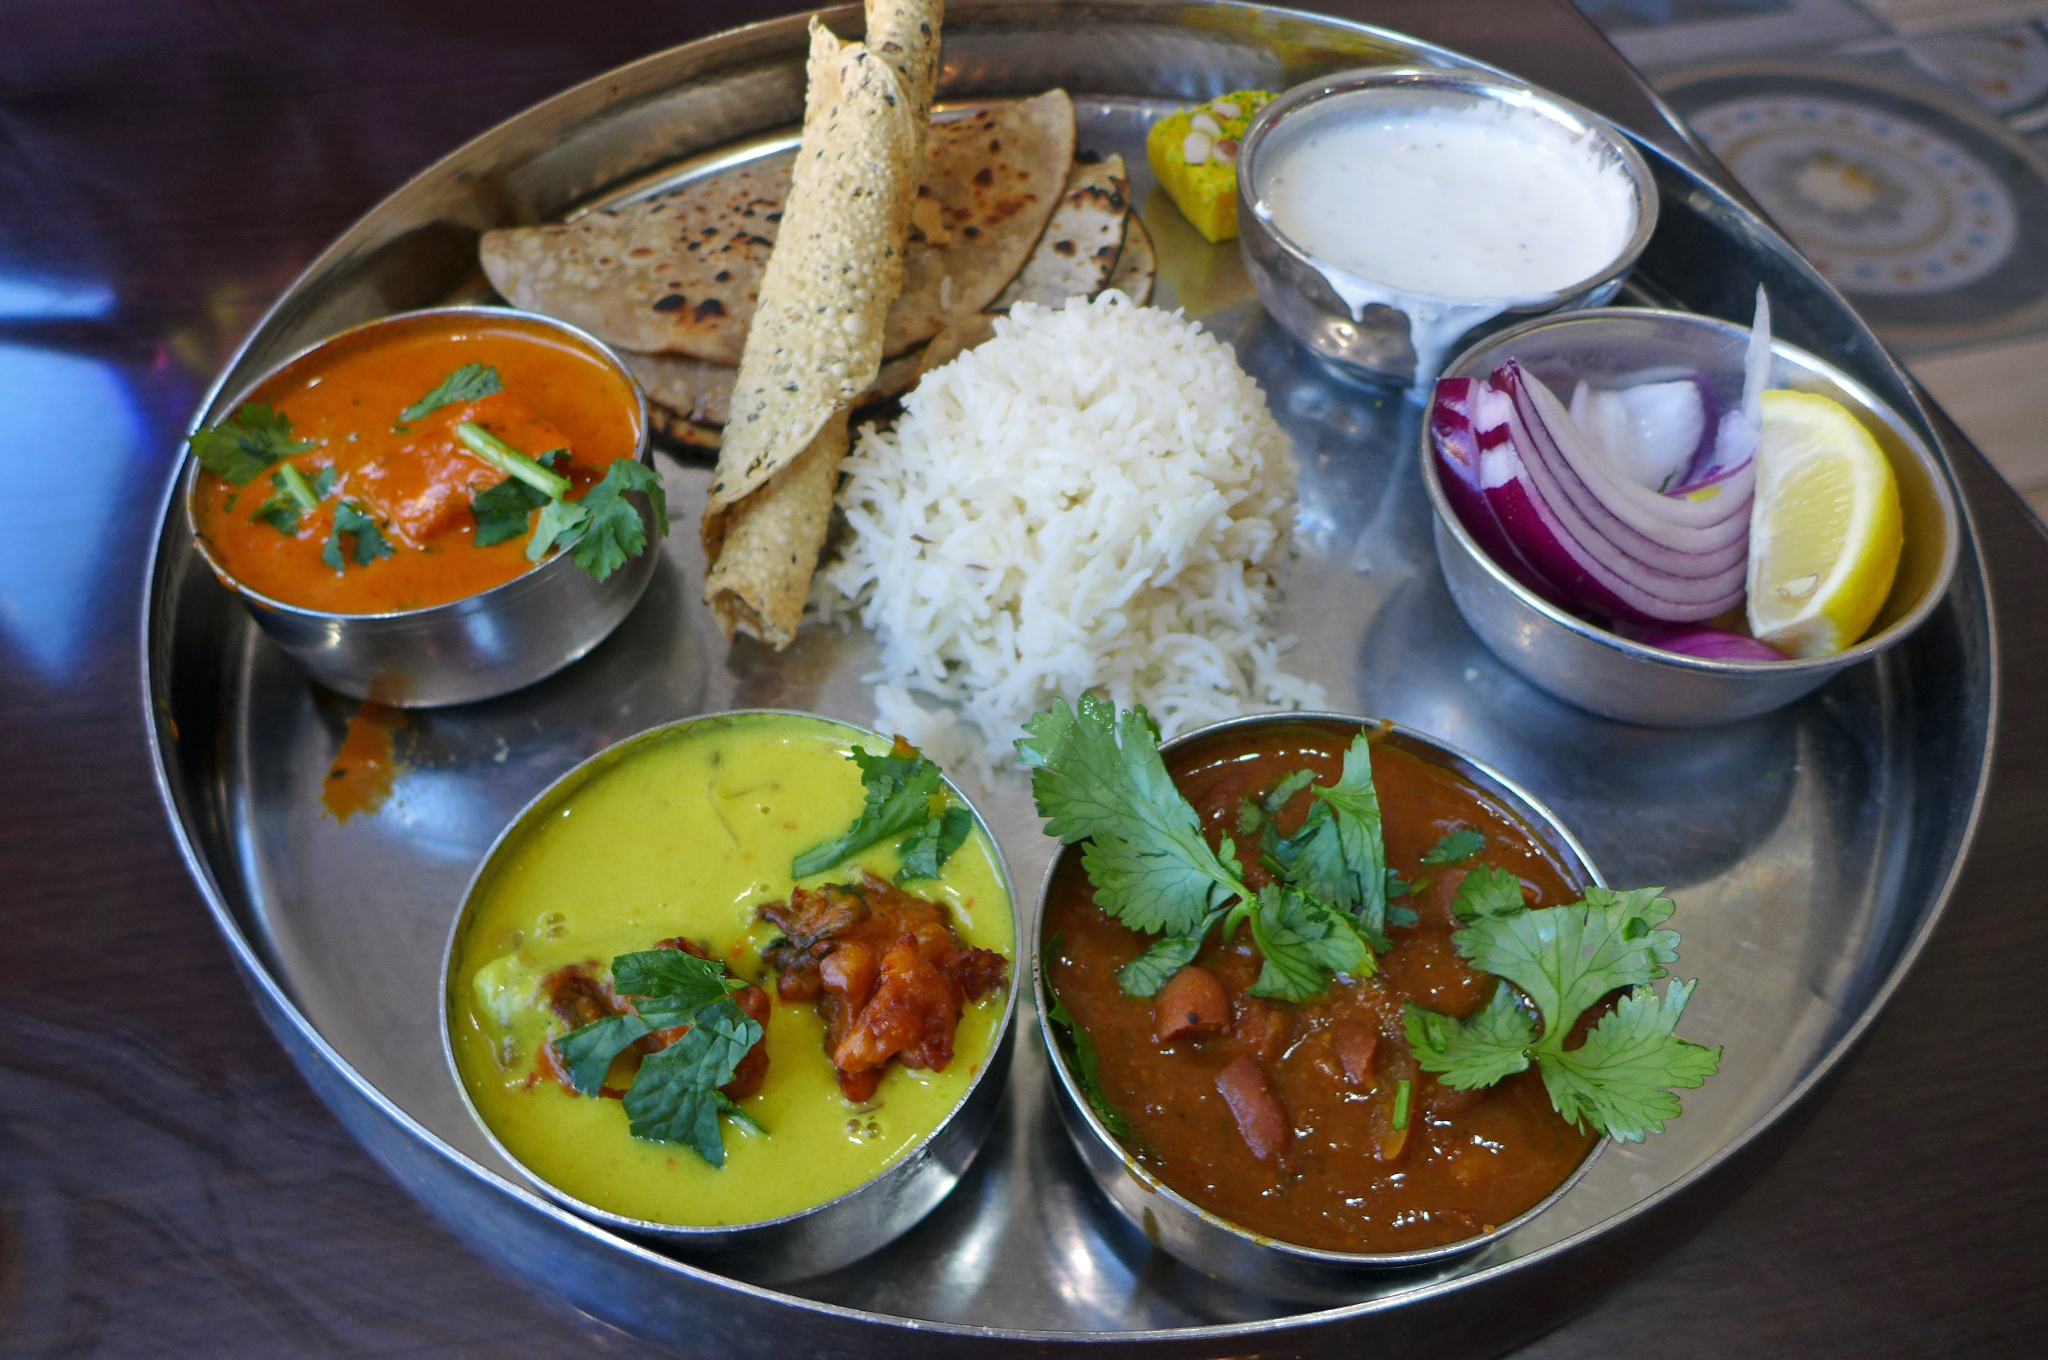 The special thali at Mithaas comes on a metal tray